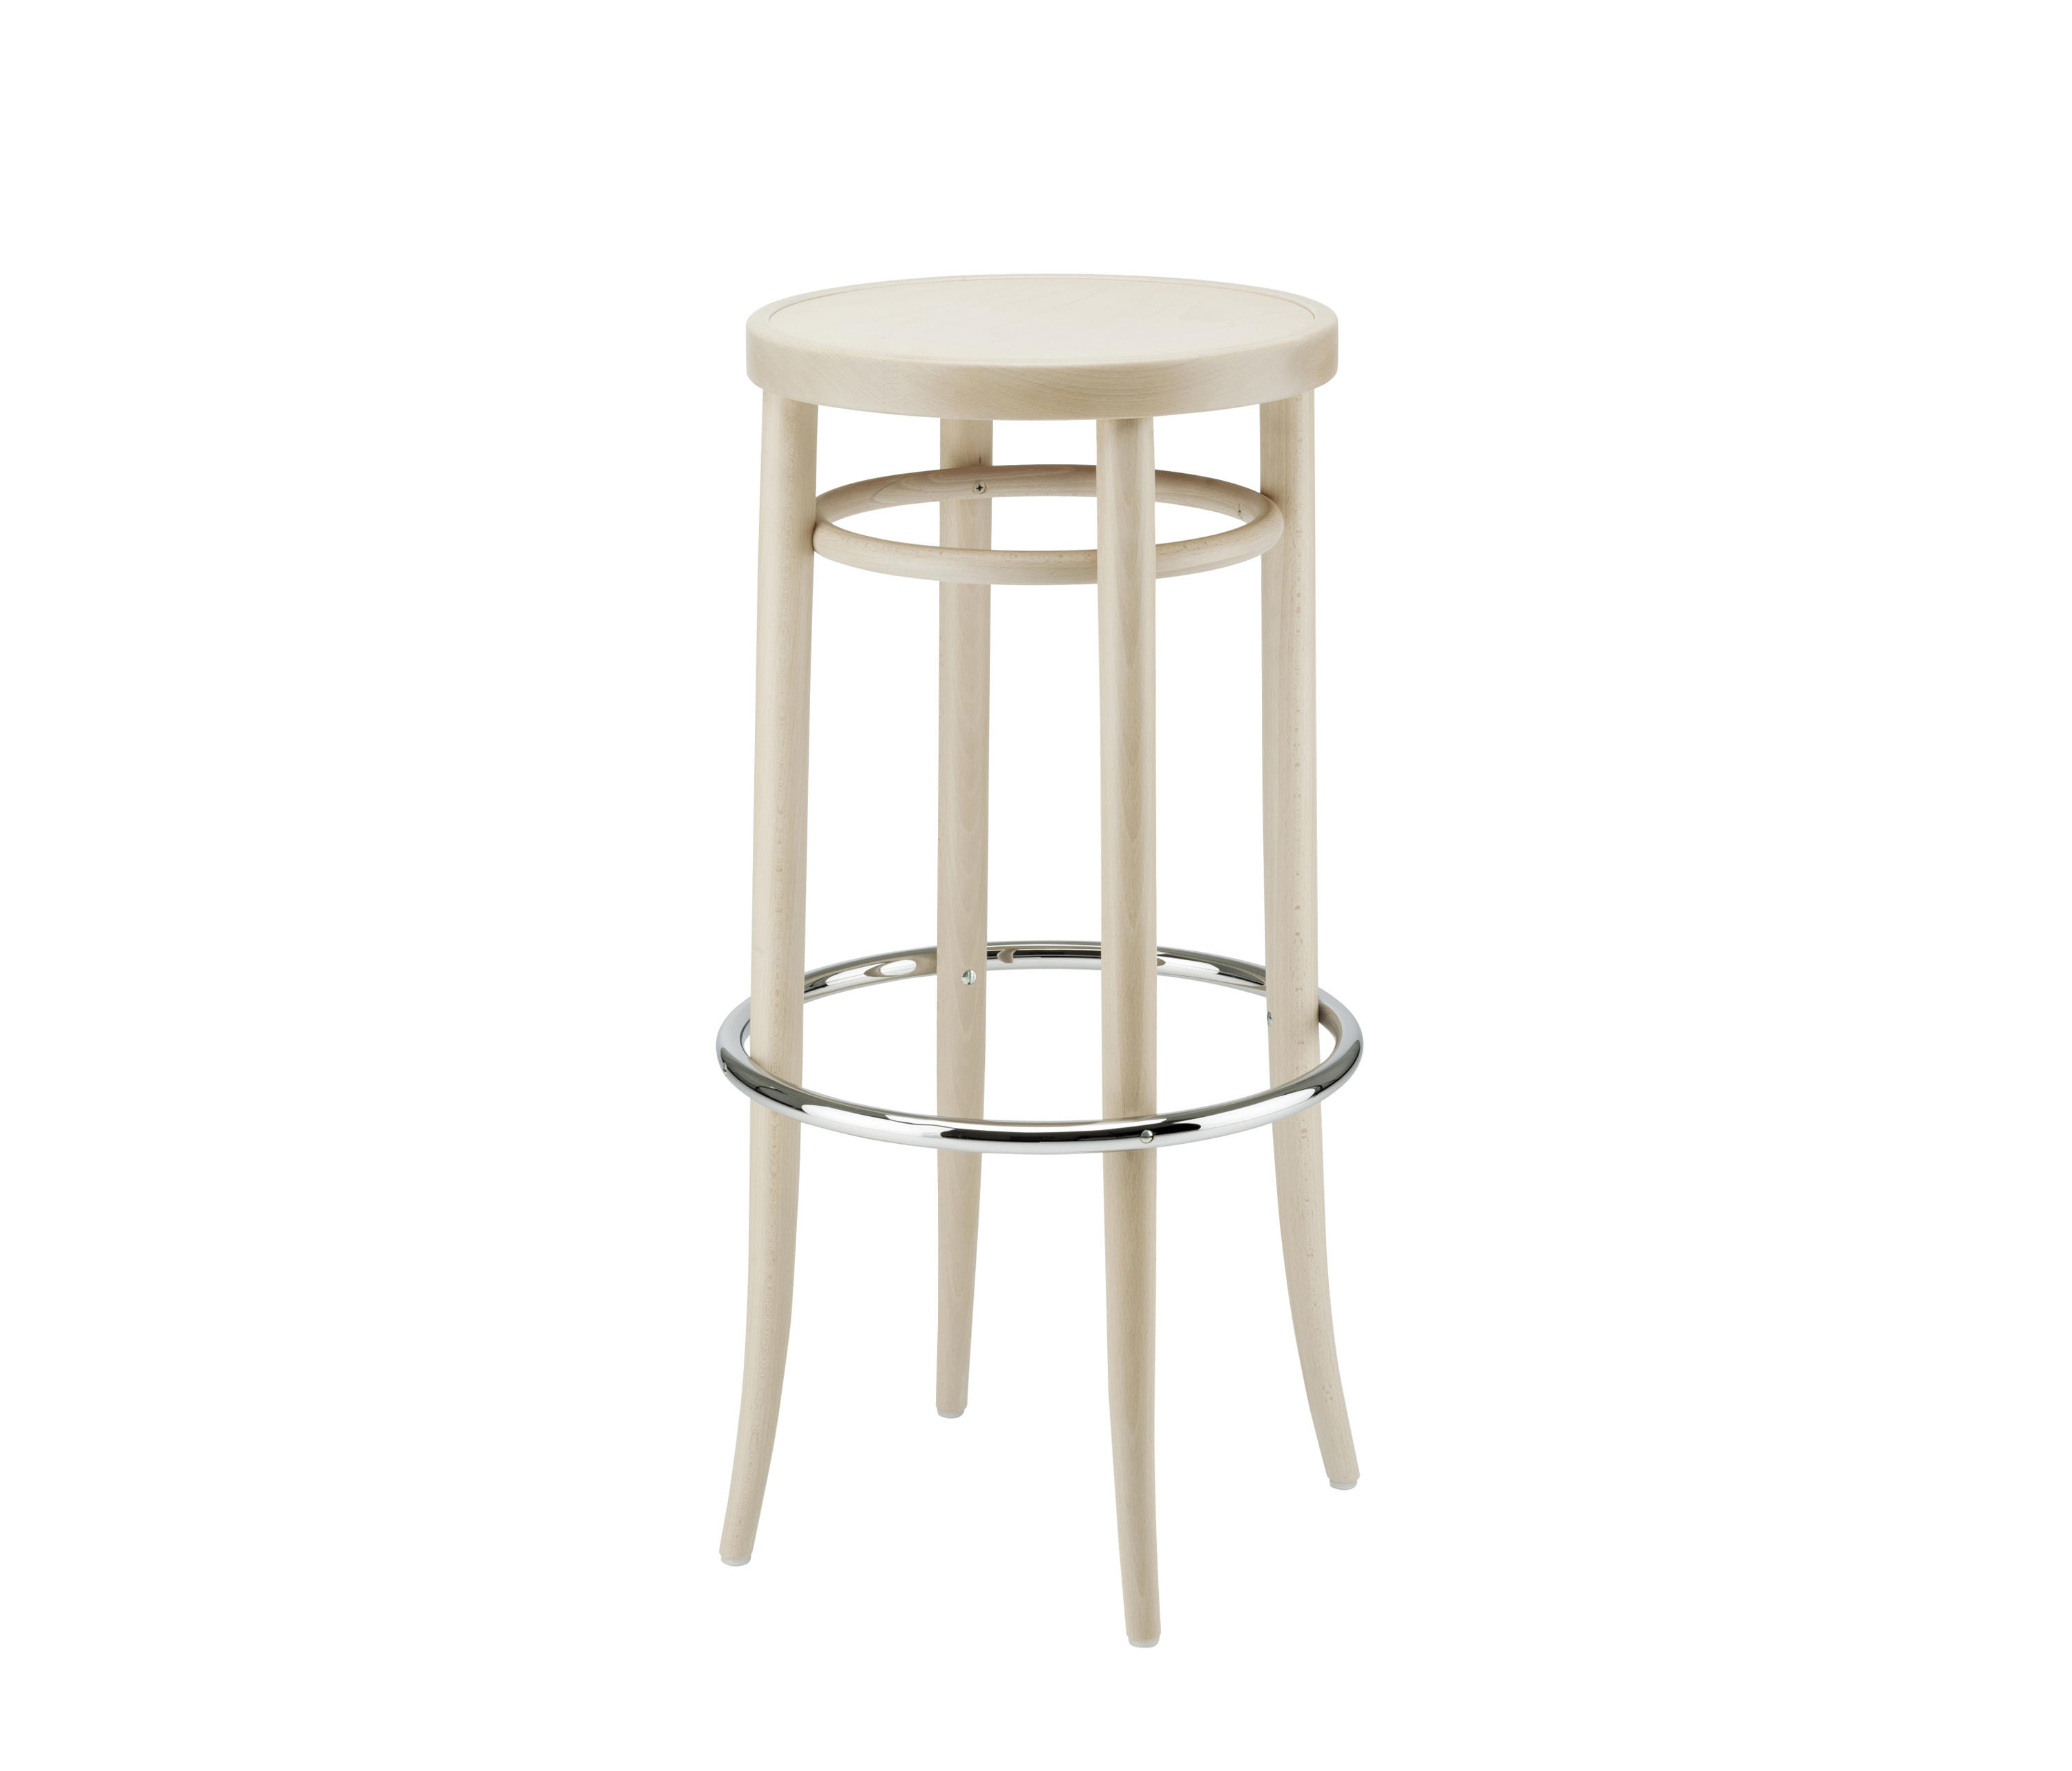 204 MH By Thonet  Bar Stools Thonet Bar Stool72